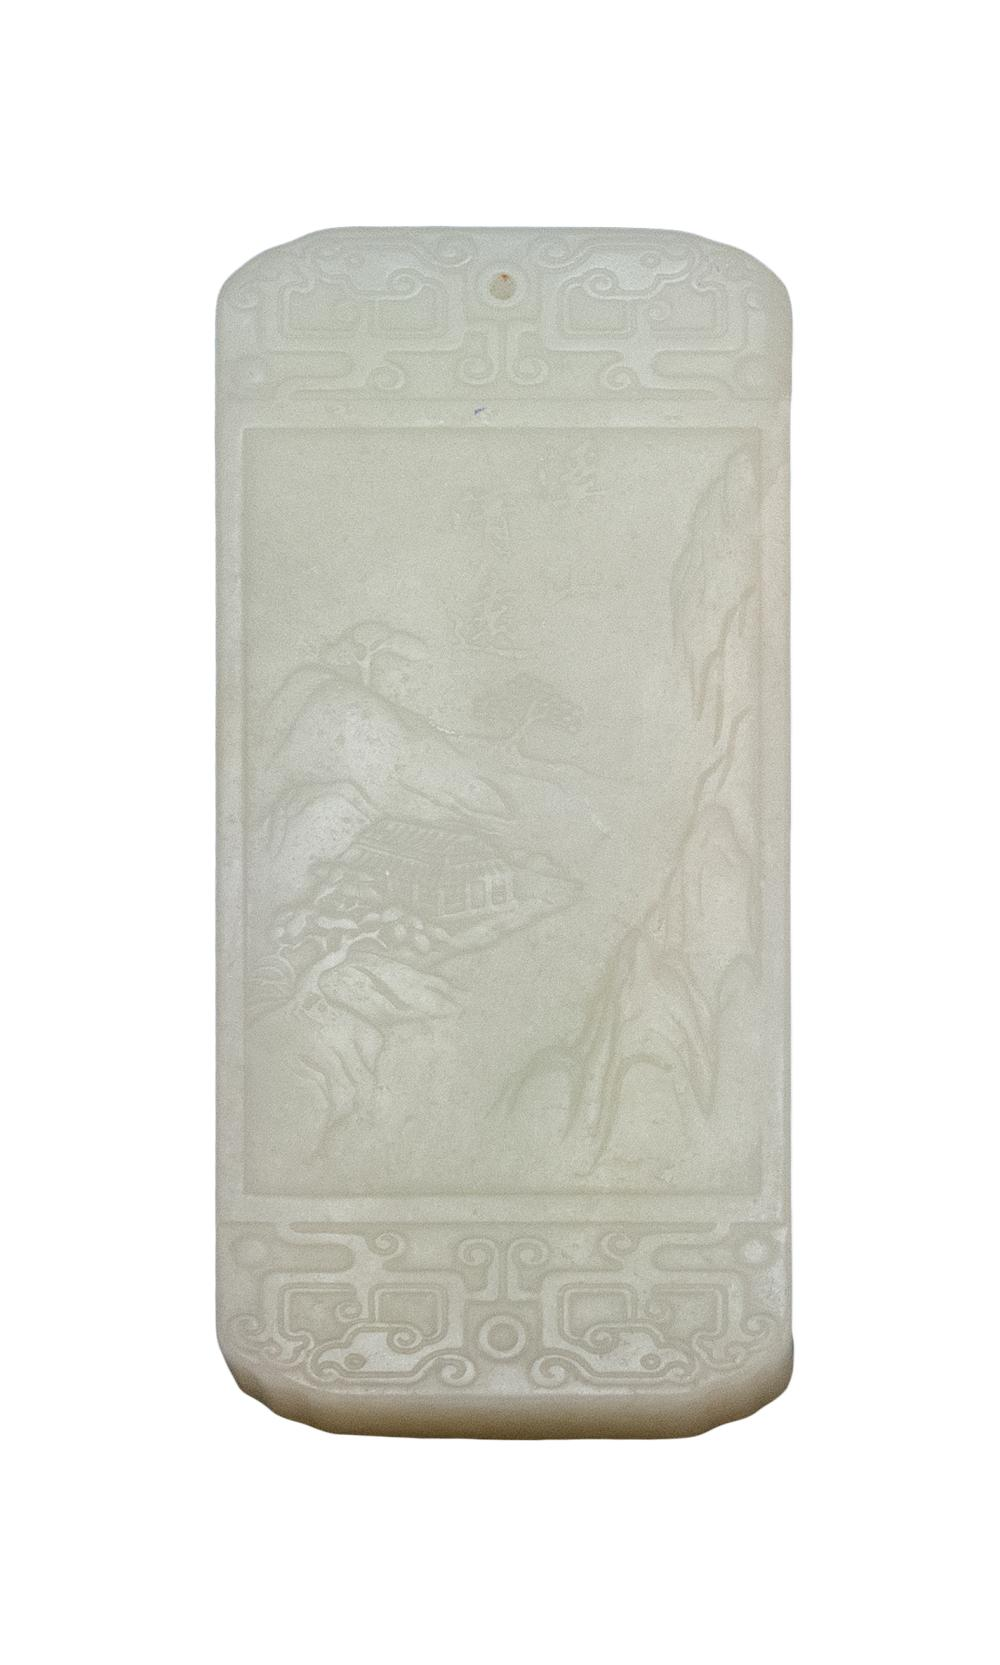 CHINESE WHITE JADE PENDANT Rectangular, carved with a figural landscape on obverse and a river landscape on reverse. Length 3.3